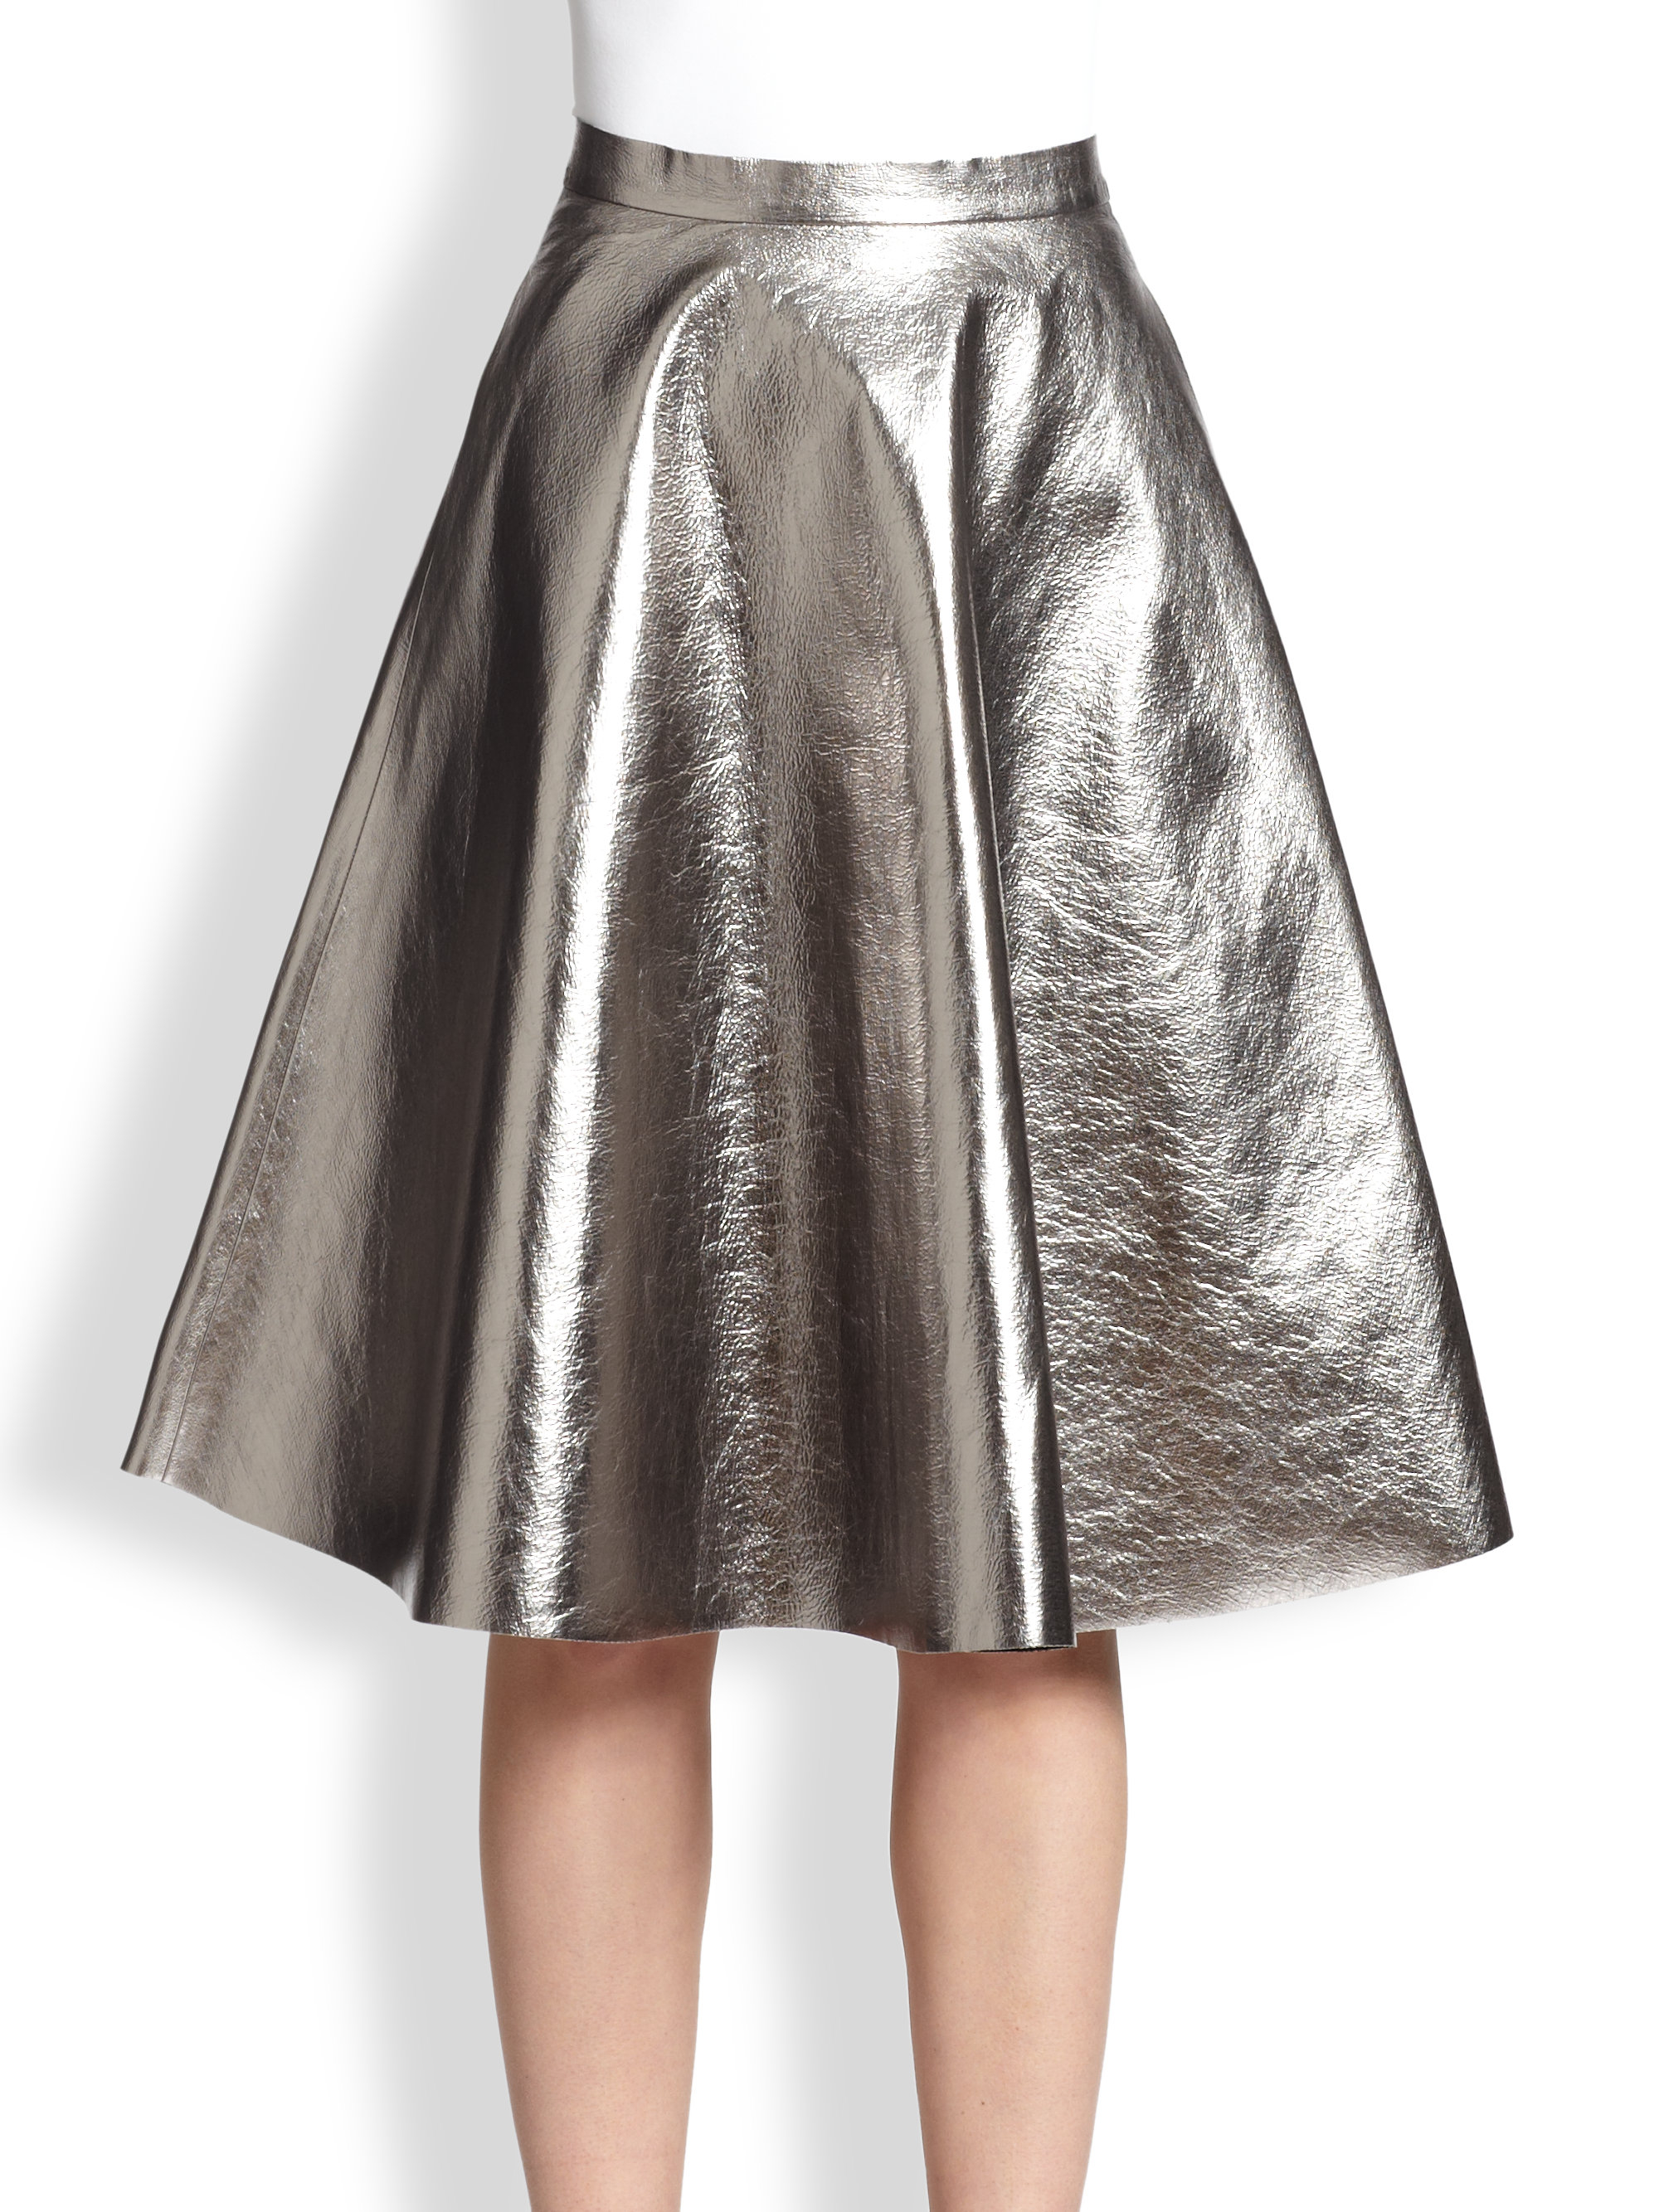 Msgm Metallic Faux Leather A-Line Skirt in Metallic | Lyst